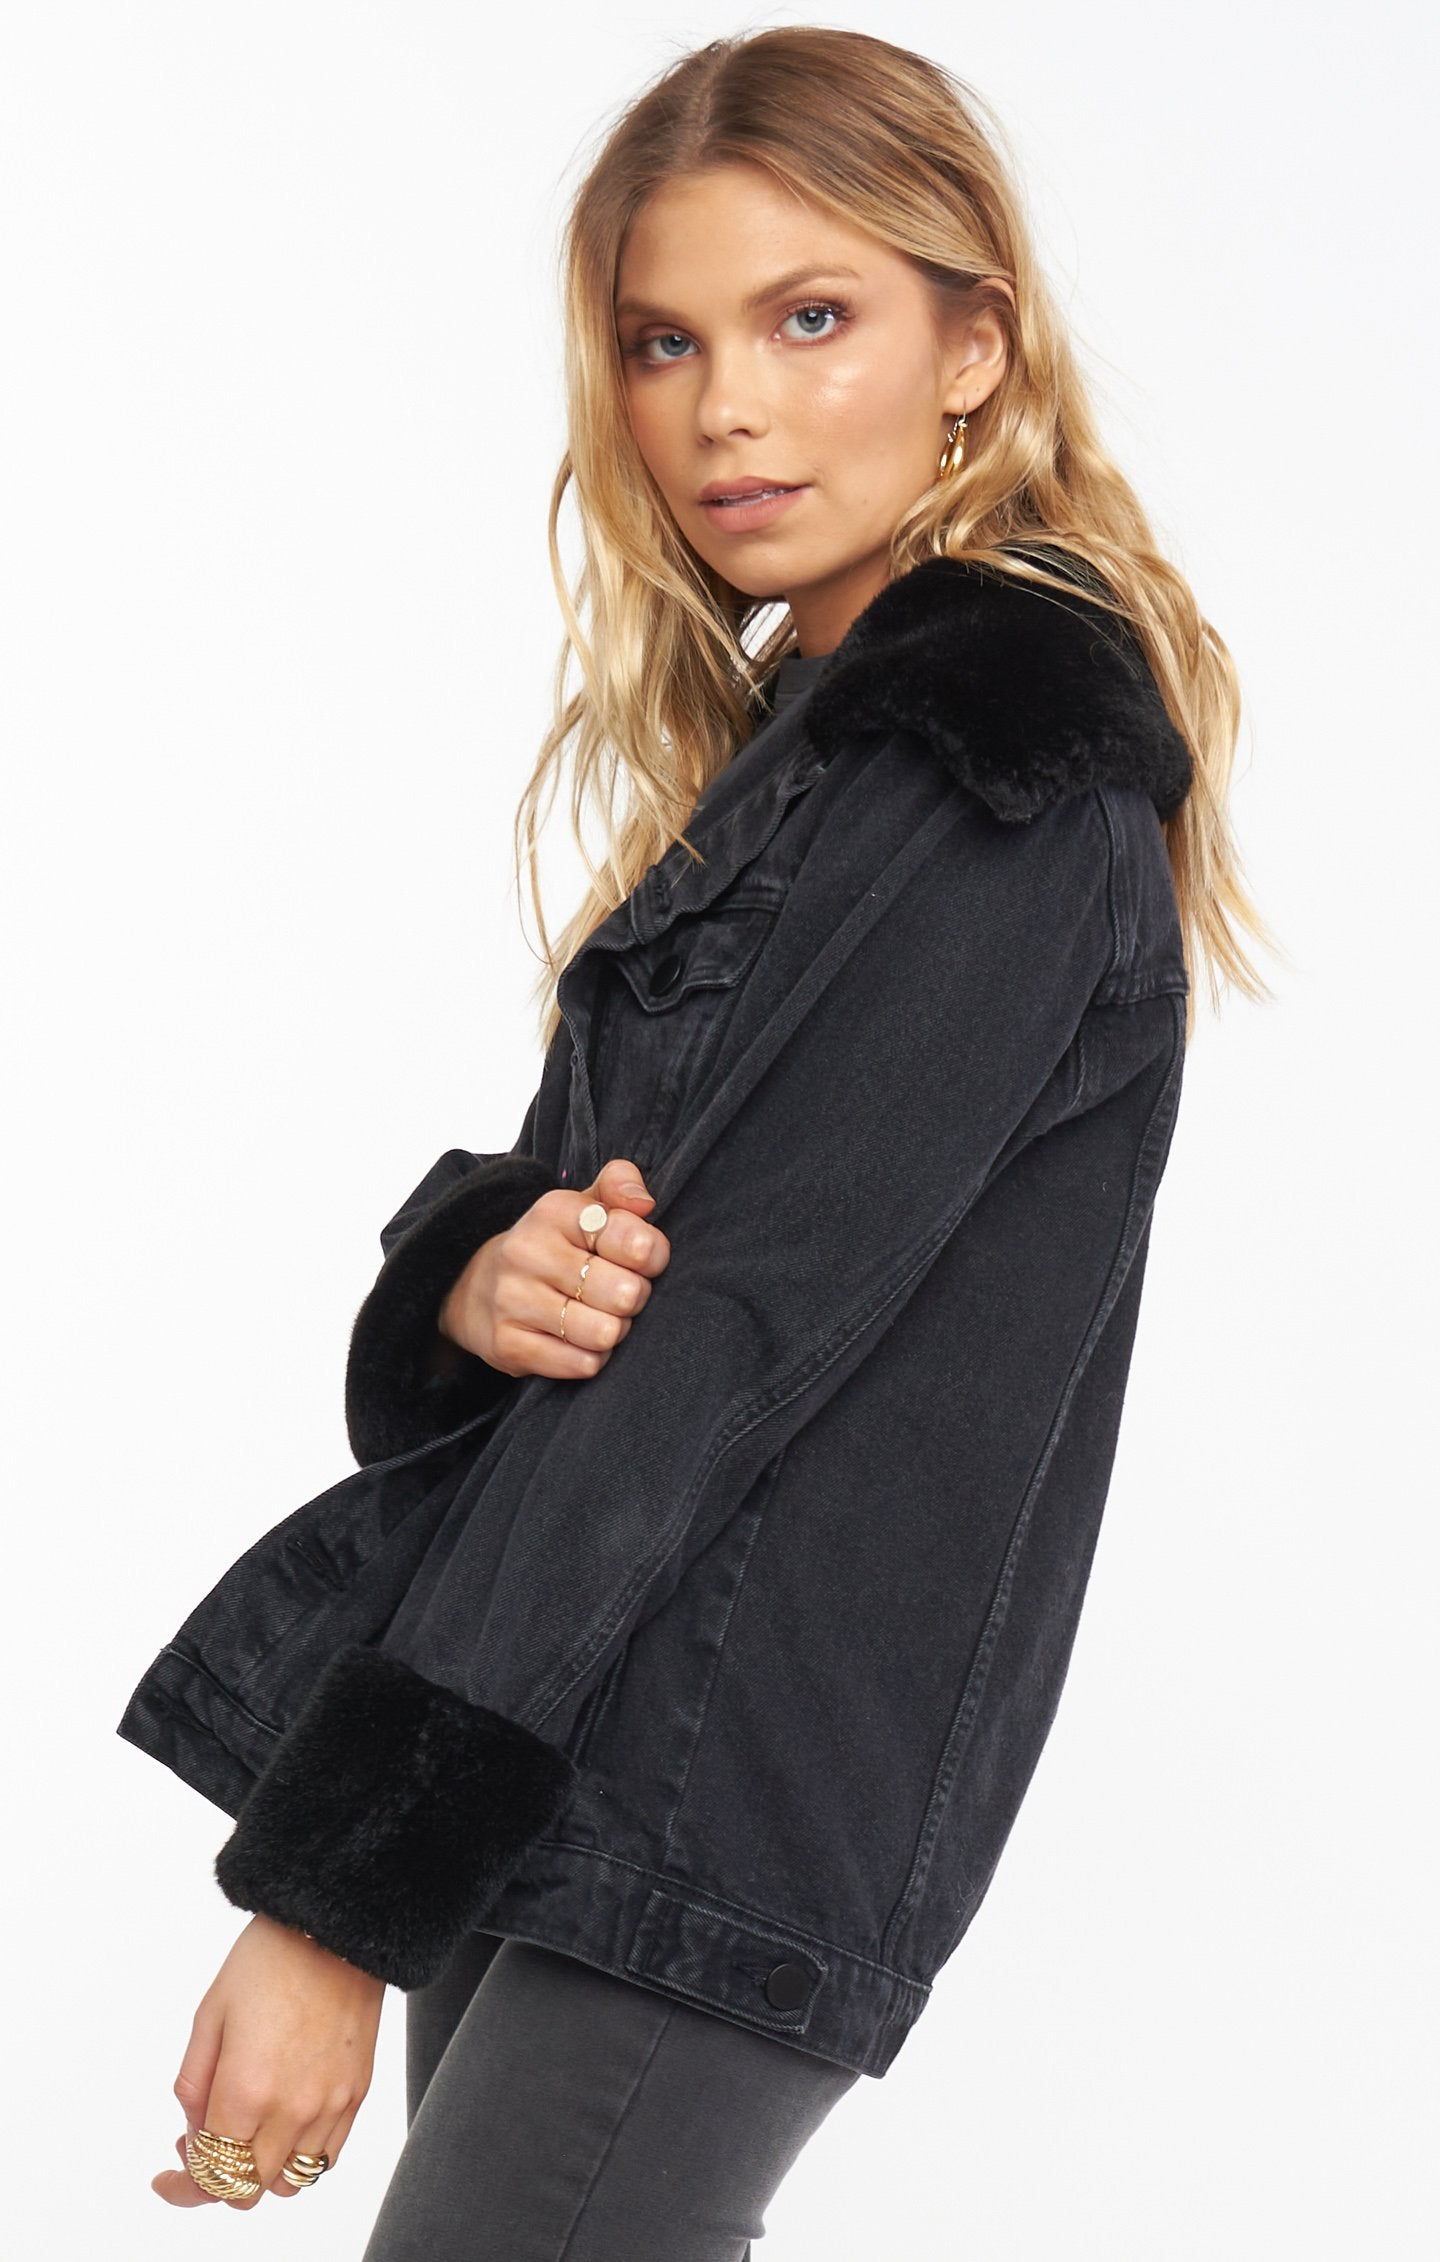 Load image into Gallery viewer, Denver Denim Jacket - Washed Black with Faux Fur | Show Me Your Mumu - Holiday/Resort 2020